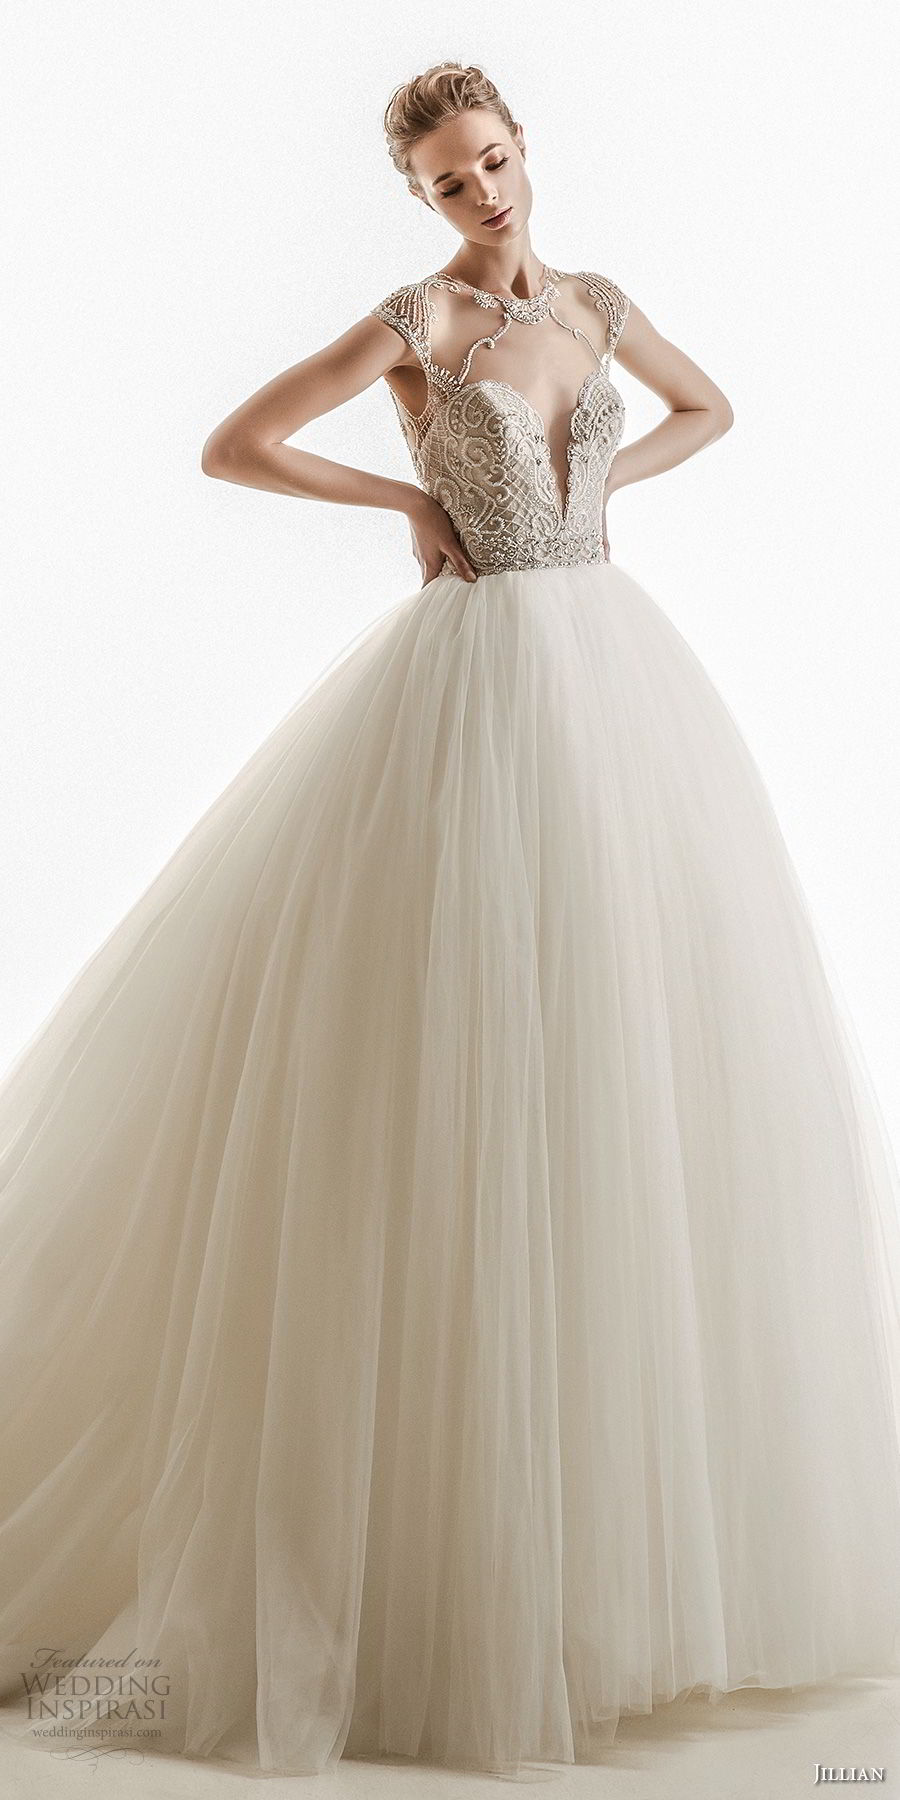 jillian 2018 bridal cap sleeves illusion jewel deep plunging sweetheart neckline heavily embellished bodice tulle skirt princess glamour wedding dress keyhole back chapel train (19) mv